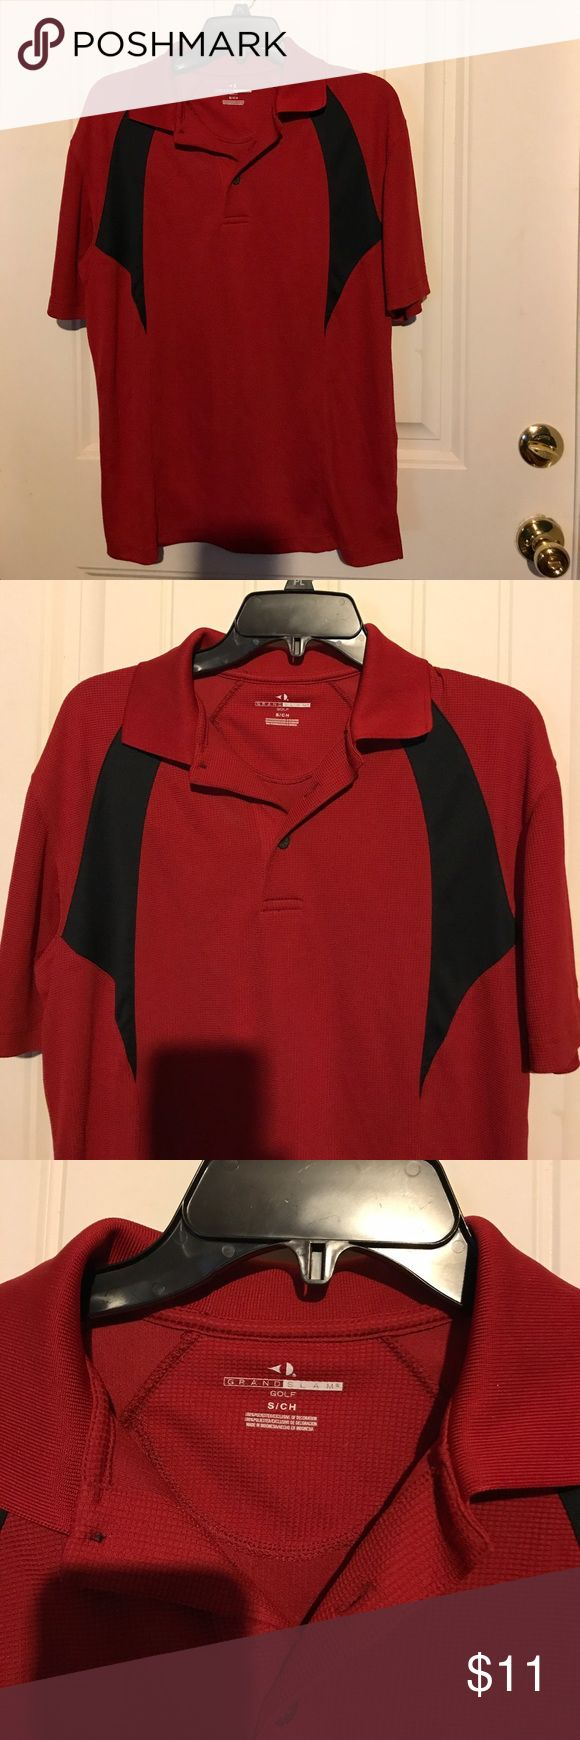 Grand Slam Men's Red & Black Golf Polo Shirt Small Grand Slam Golf Polo Shirt is size small. Men's shirt is a deep red with black detail. Shirt has short sleeves, collar, slits on each side and closes with 2 buttons. Made in Indonesia of 100% polyester. Grand Slam Shirts Polos